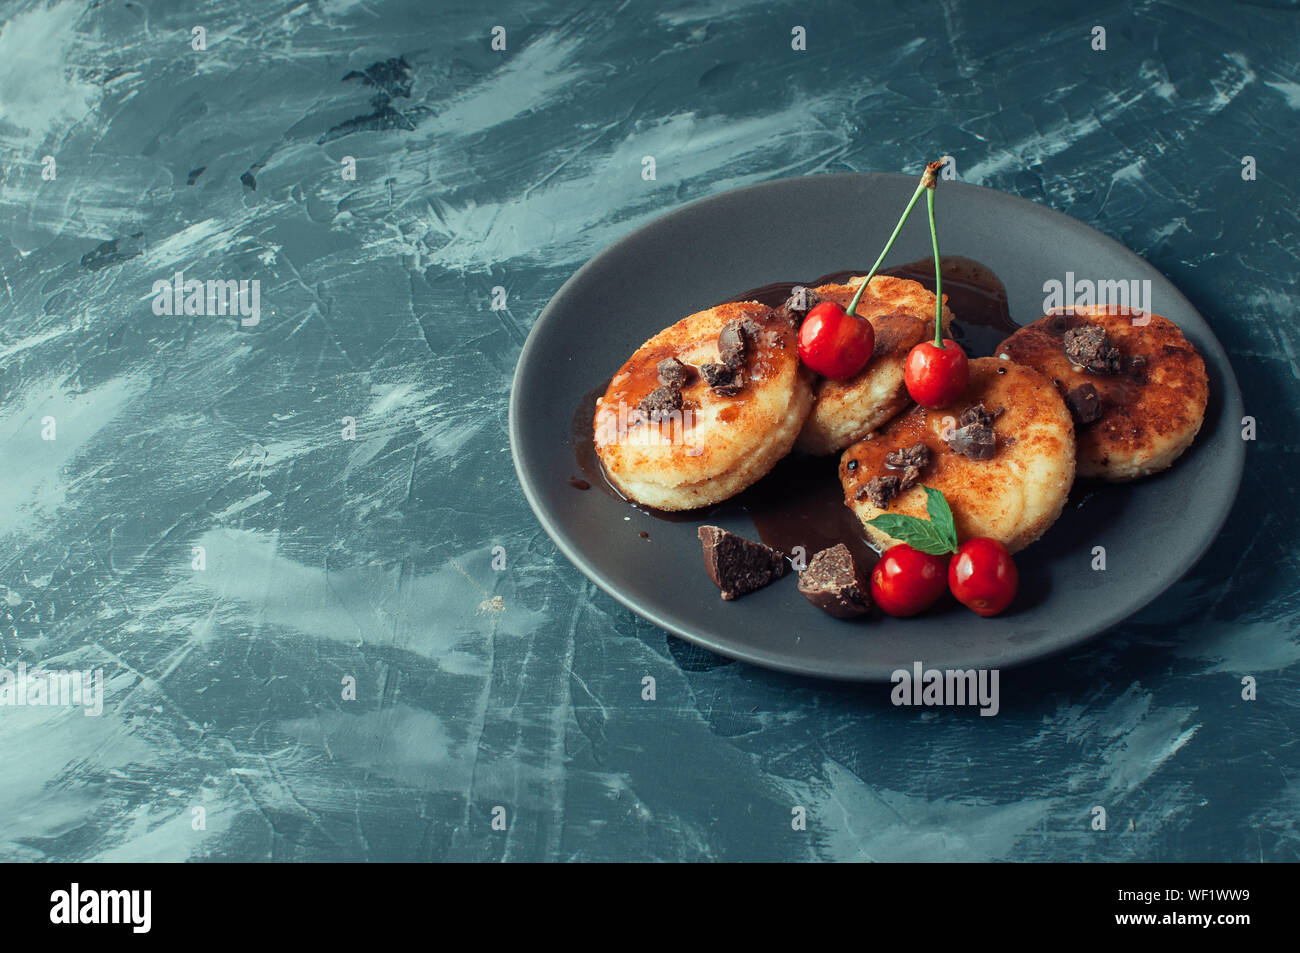 Breakfast Food Tasty Concept. Cheesecakes, cheesecakes, cottage cheese pancakes with cherries and chocolate on a black background concrete table. Clos Stock Photo